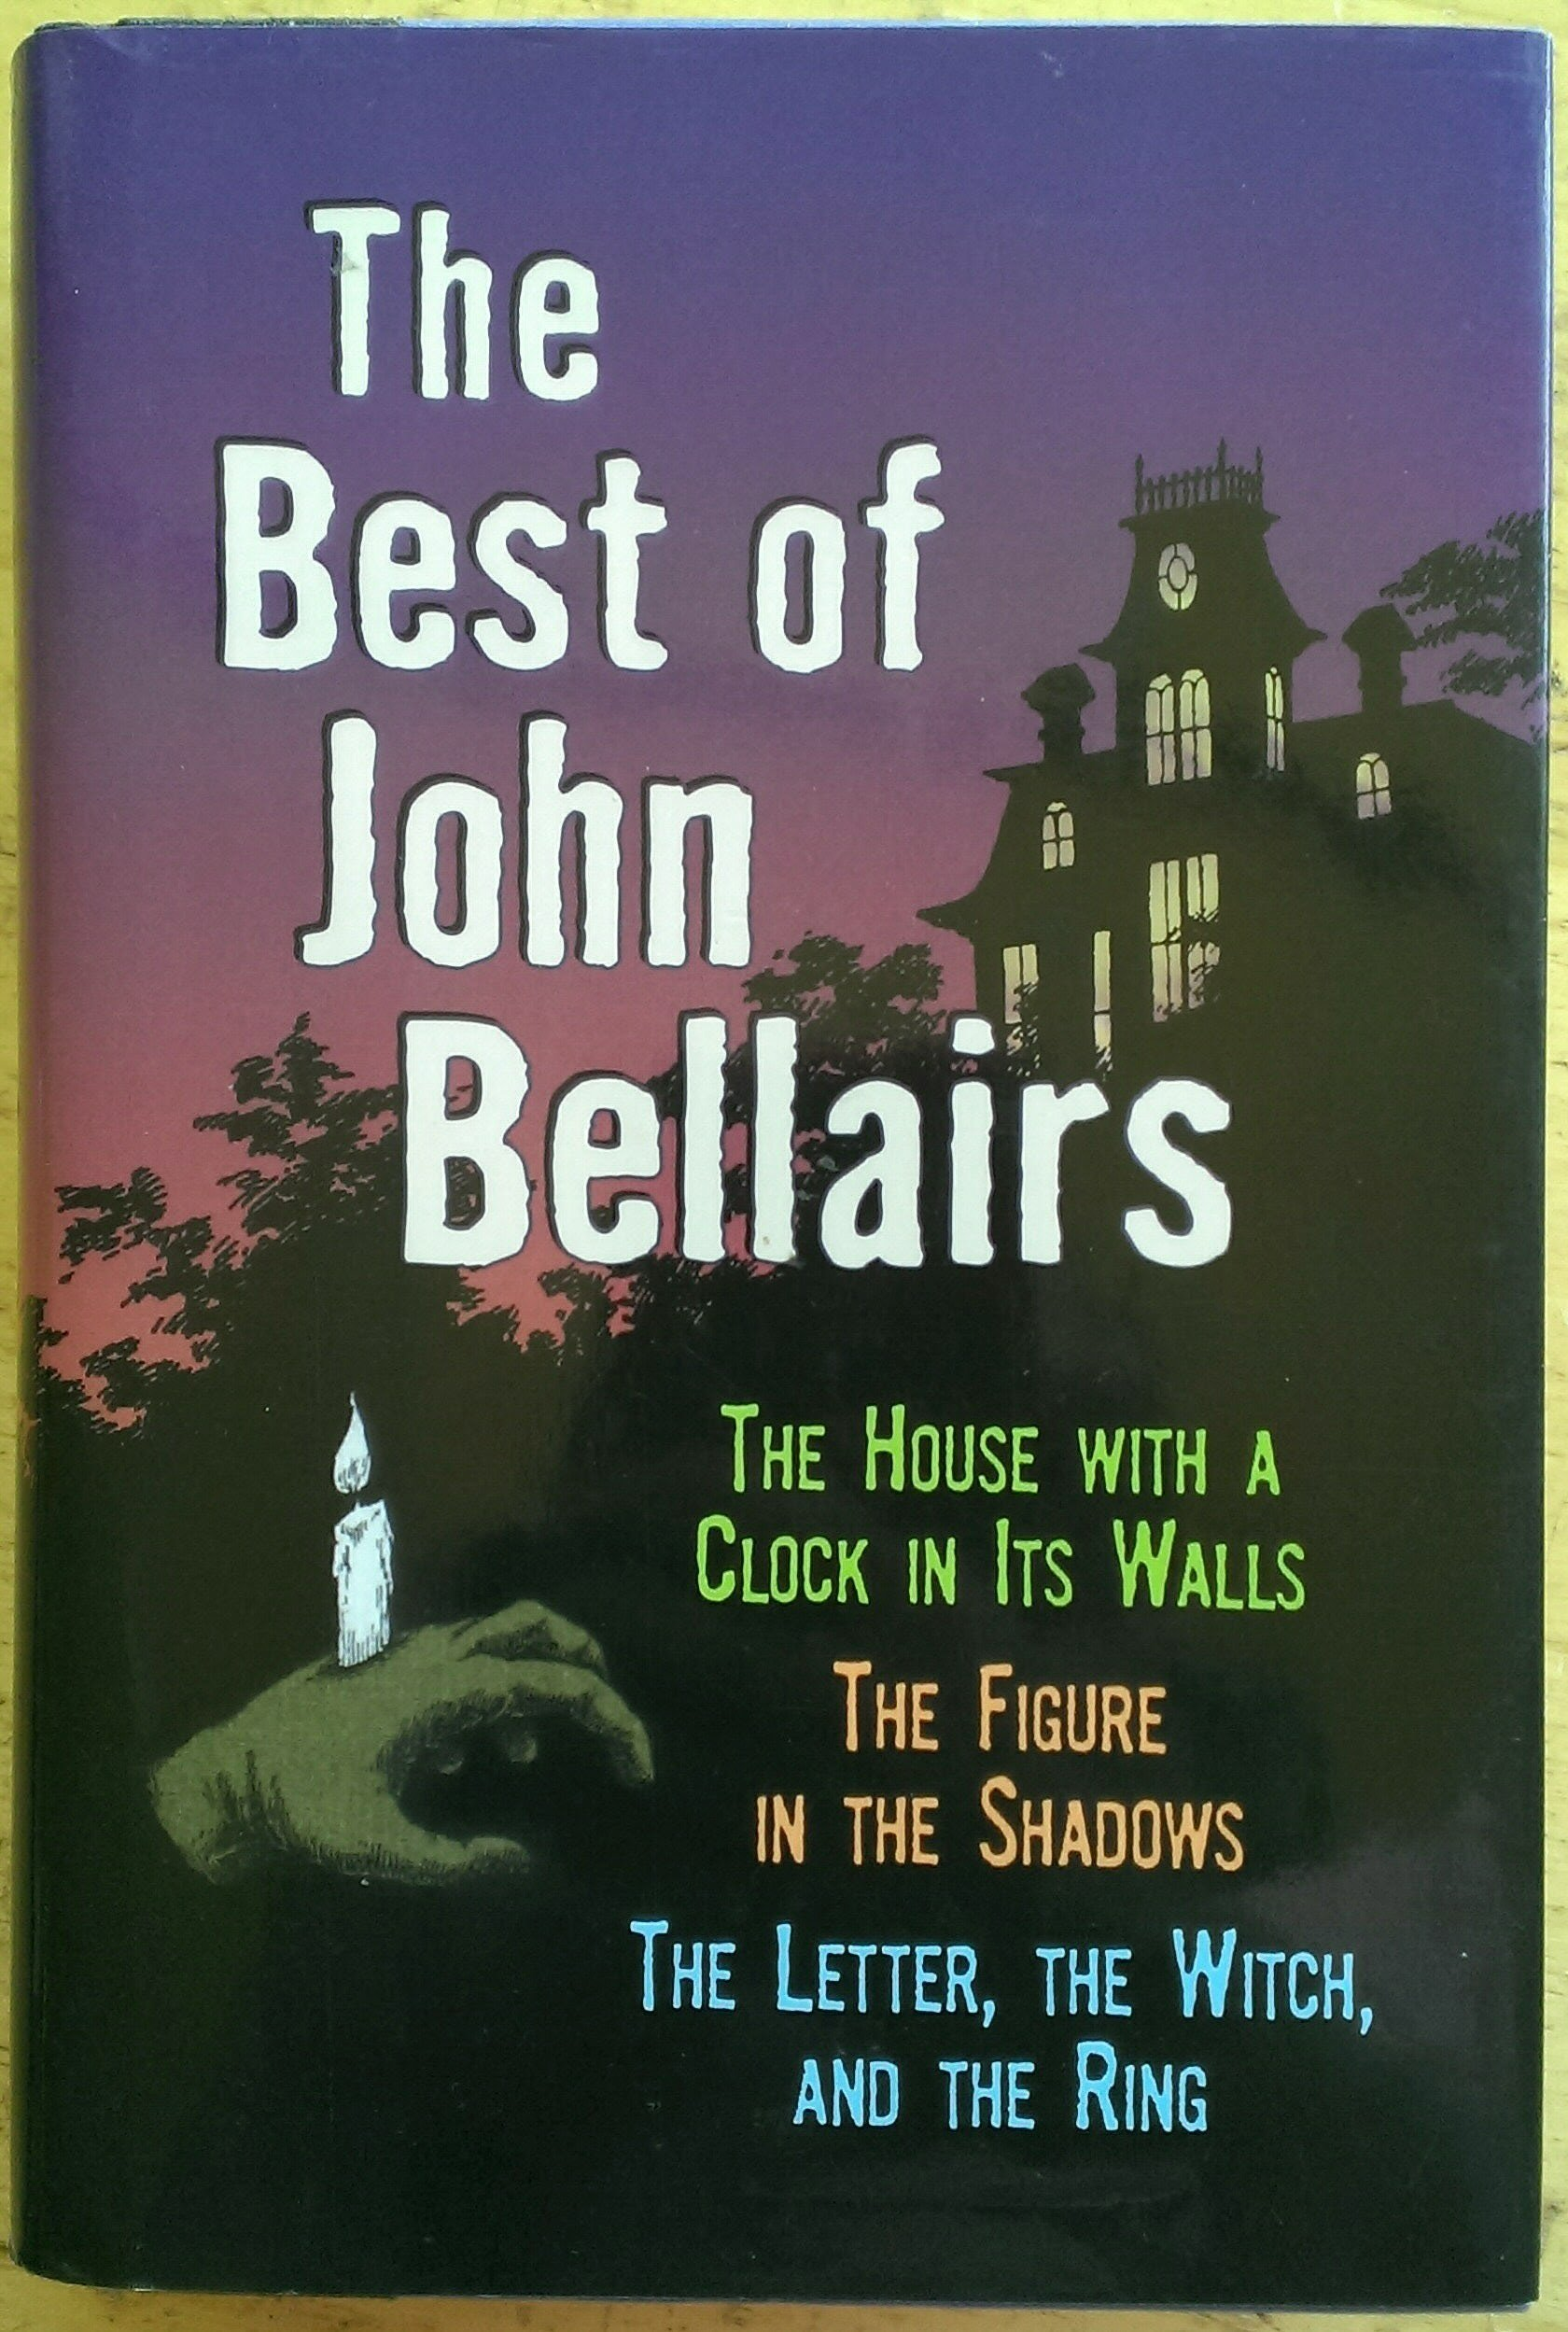 The Best of John Bellairs The House with a Clock in Its Walls